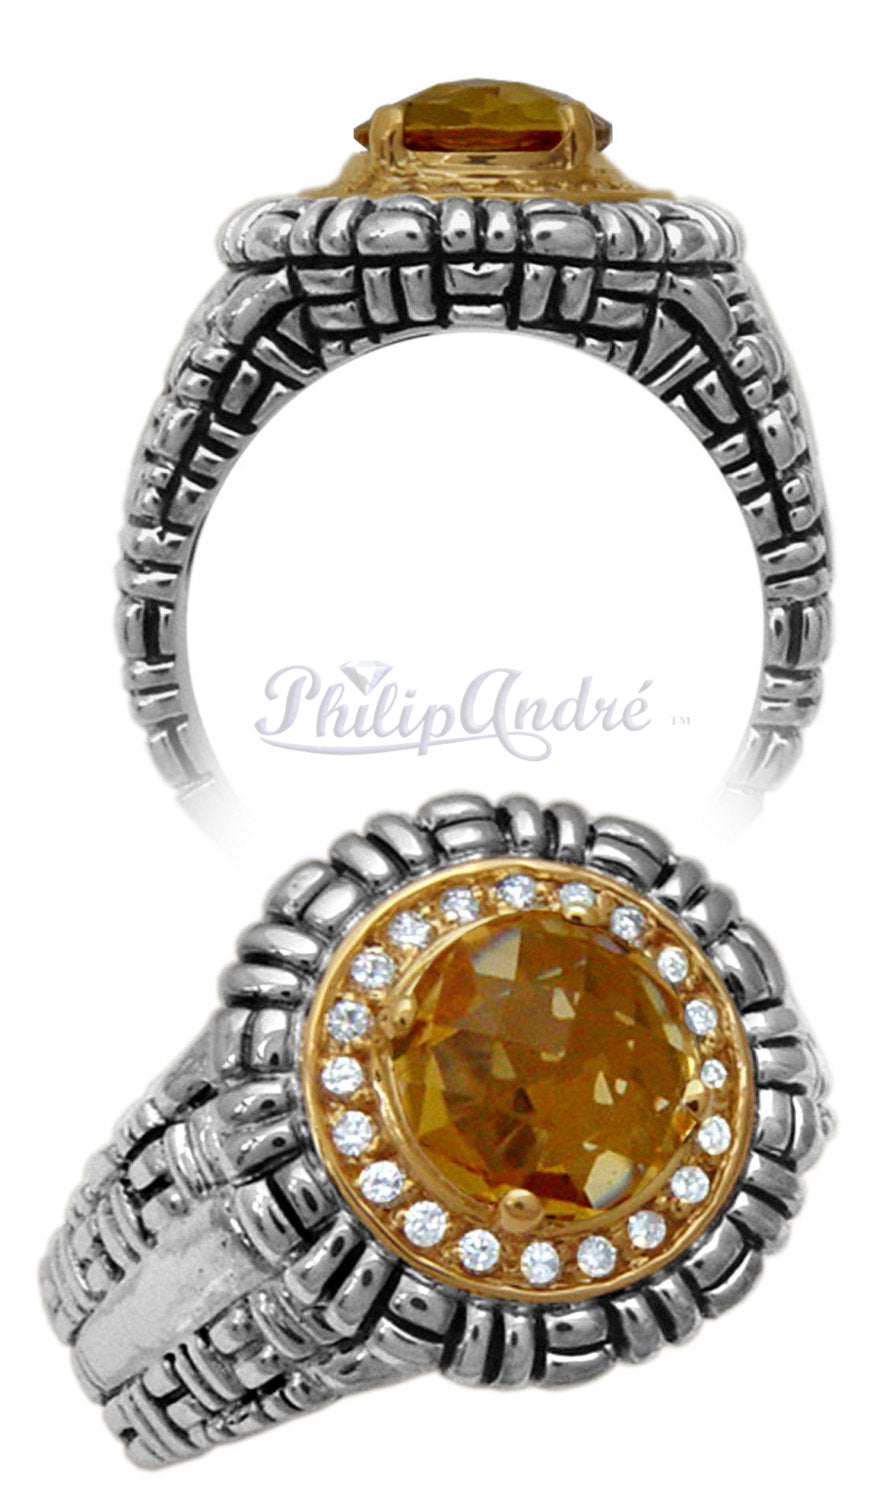 Philip Andre 18K Yellow Gold and Sterling Silver Diamond and Honey Quartz Ring